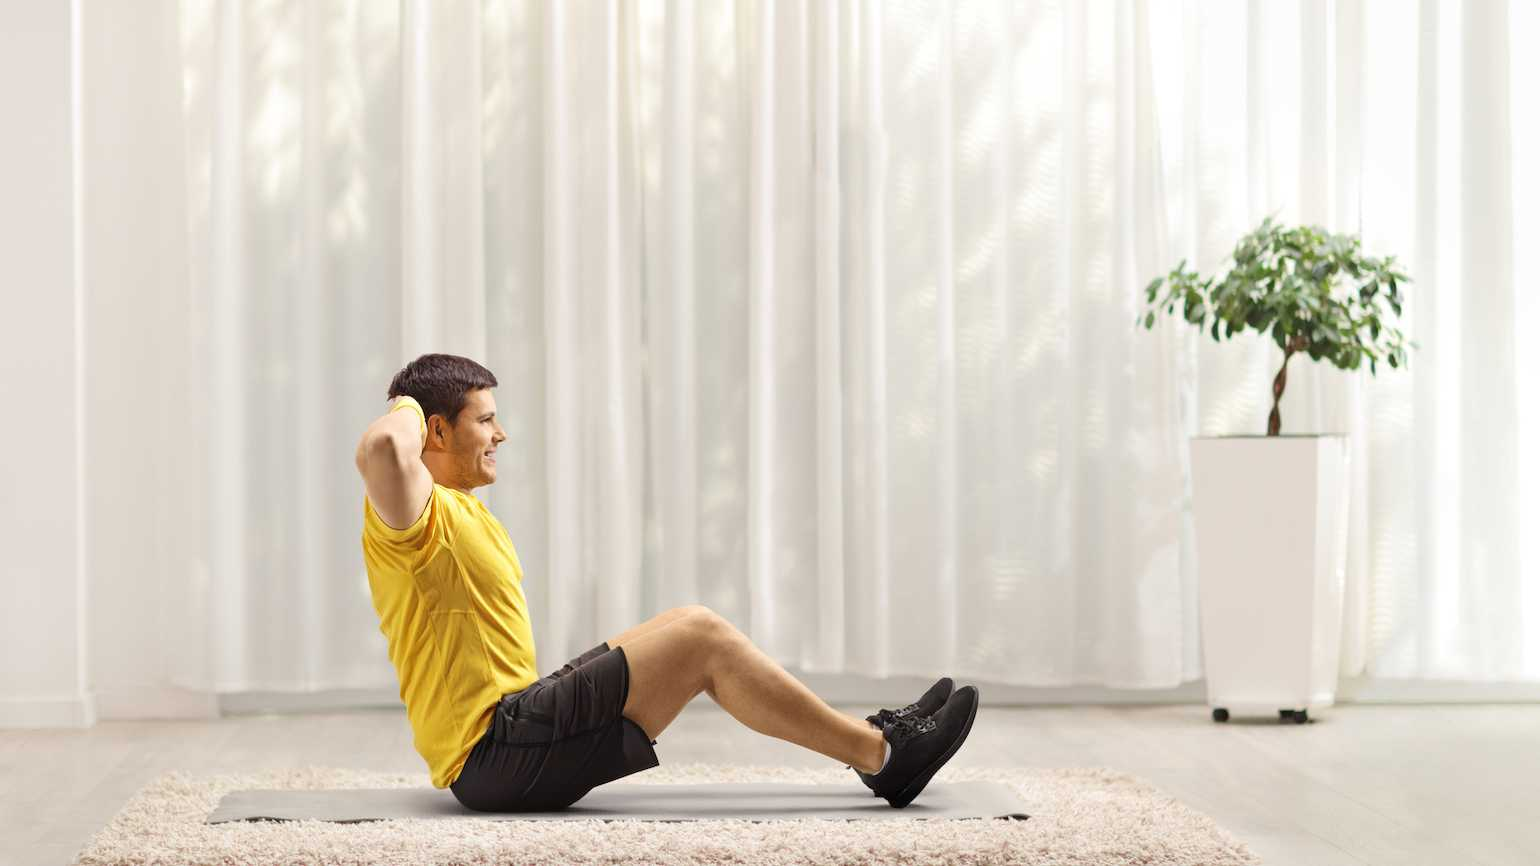 Bible verses to inspire exercise